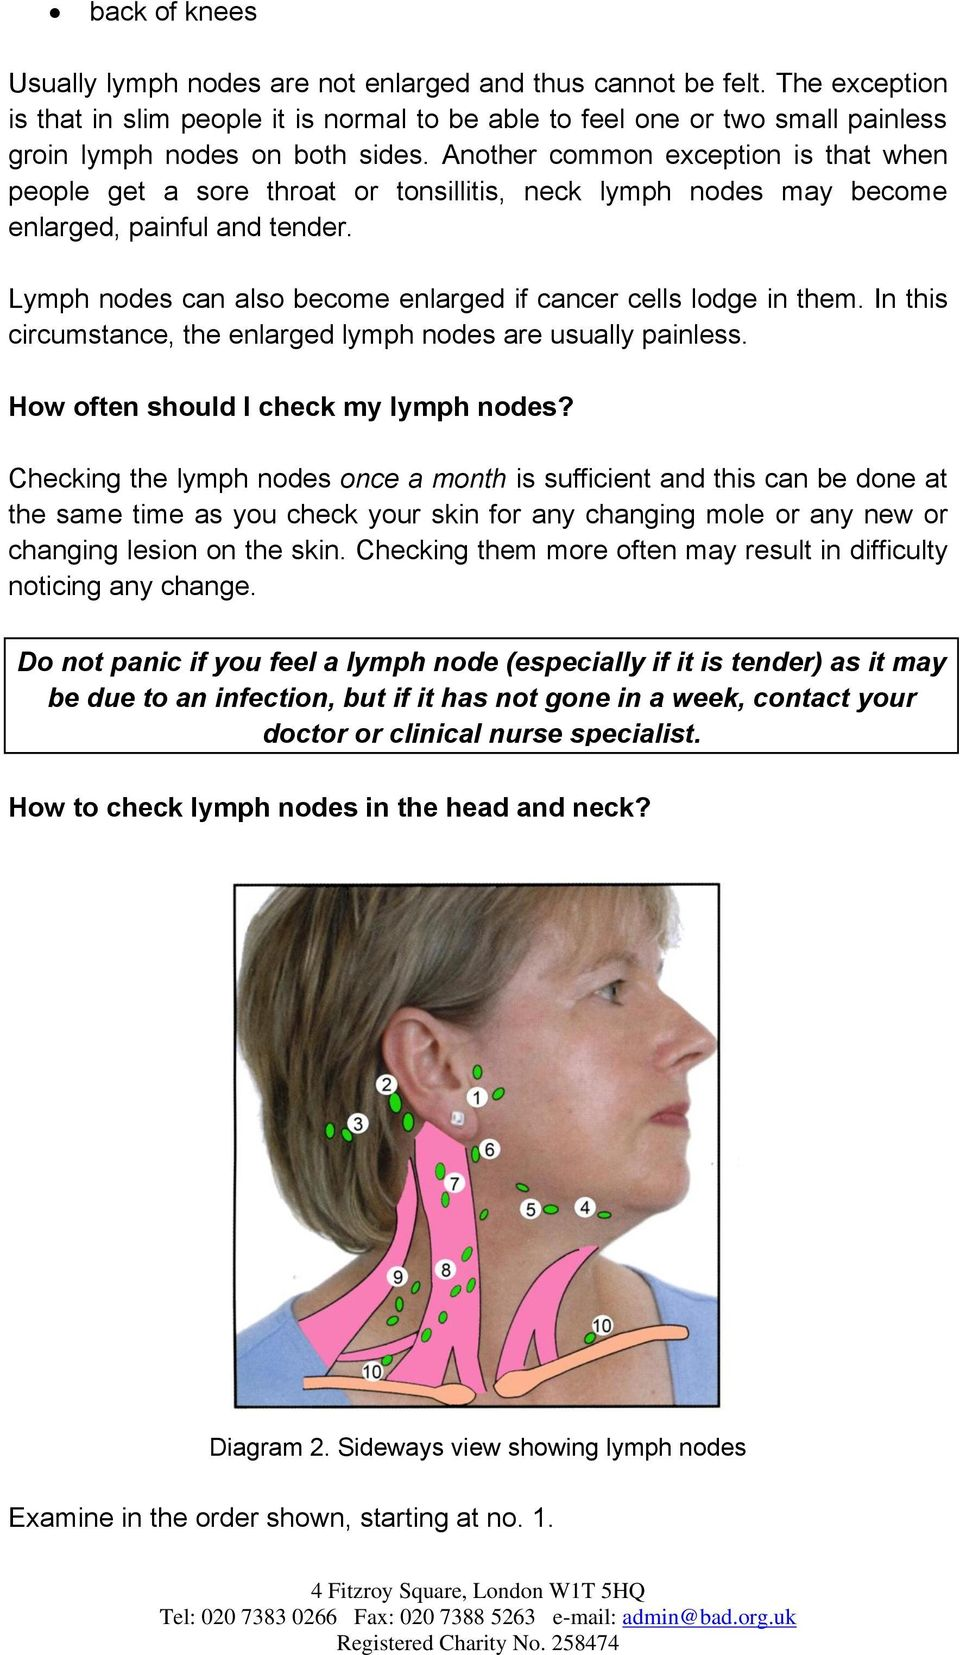 lymph nodes in face diagram